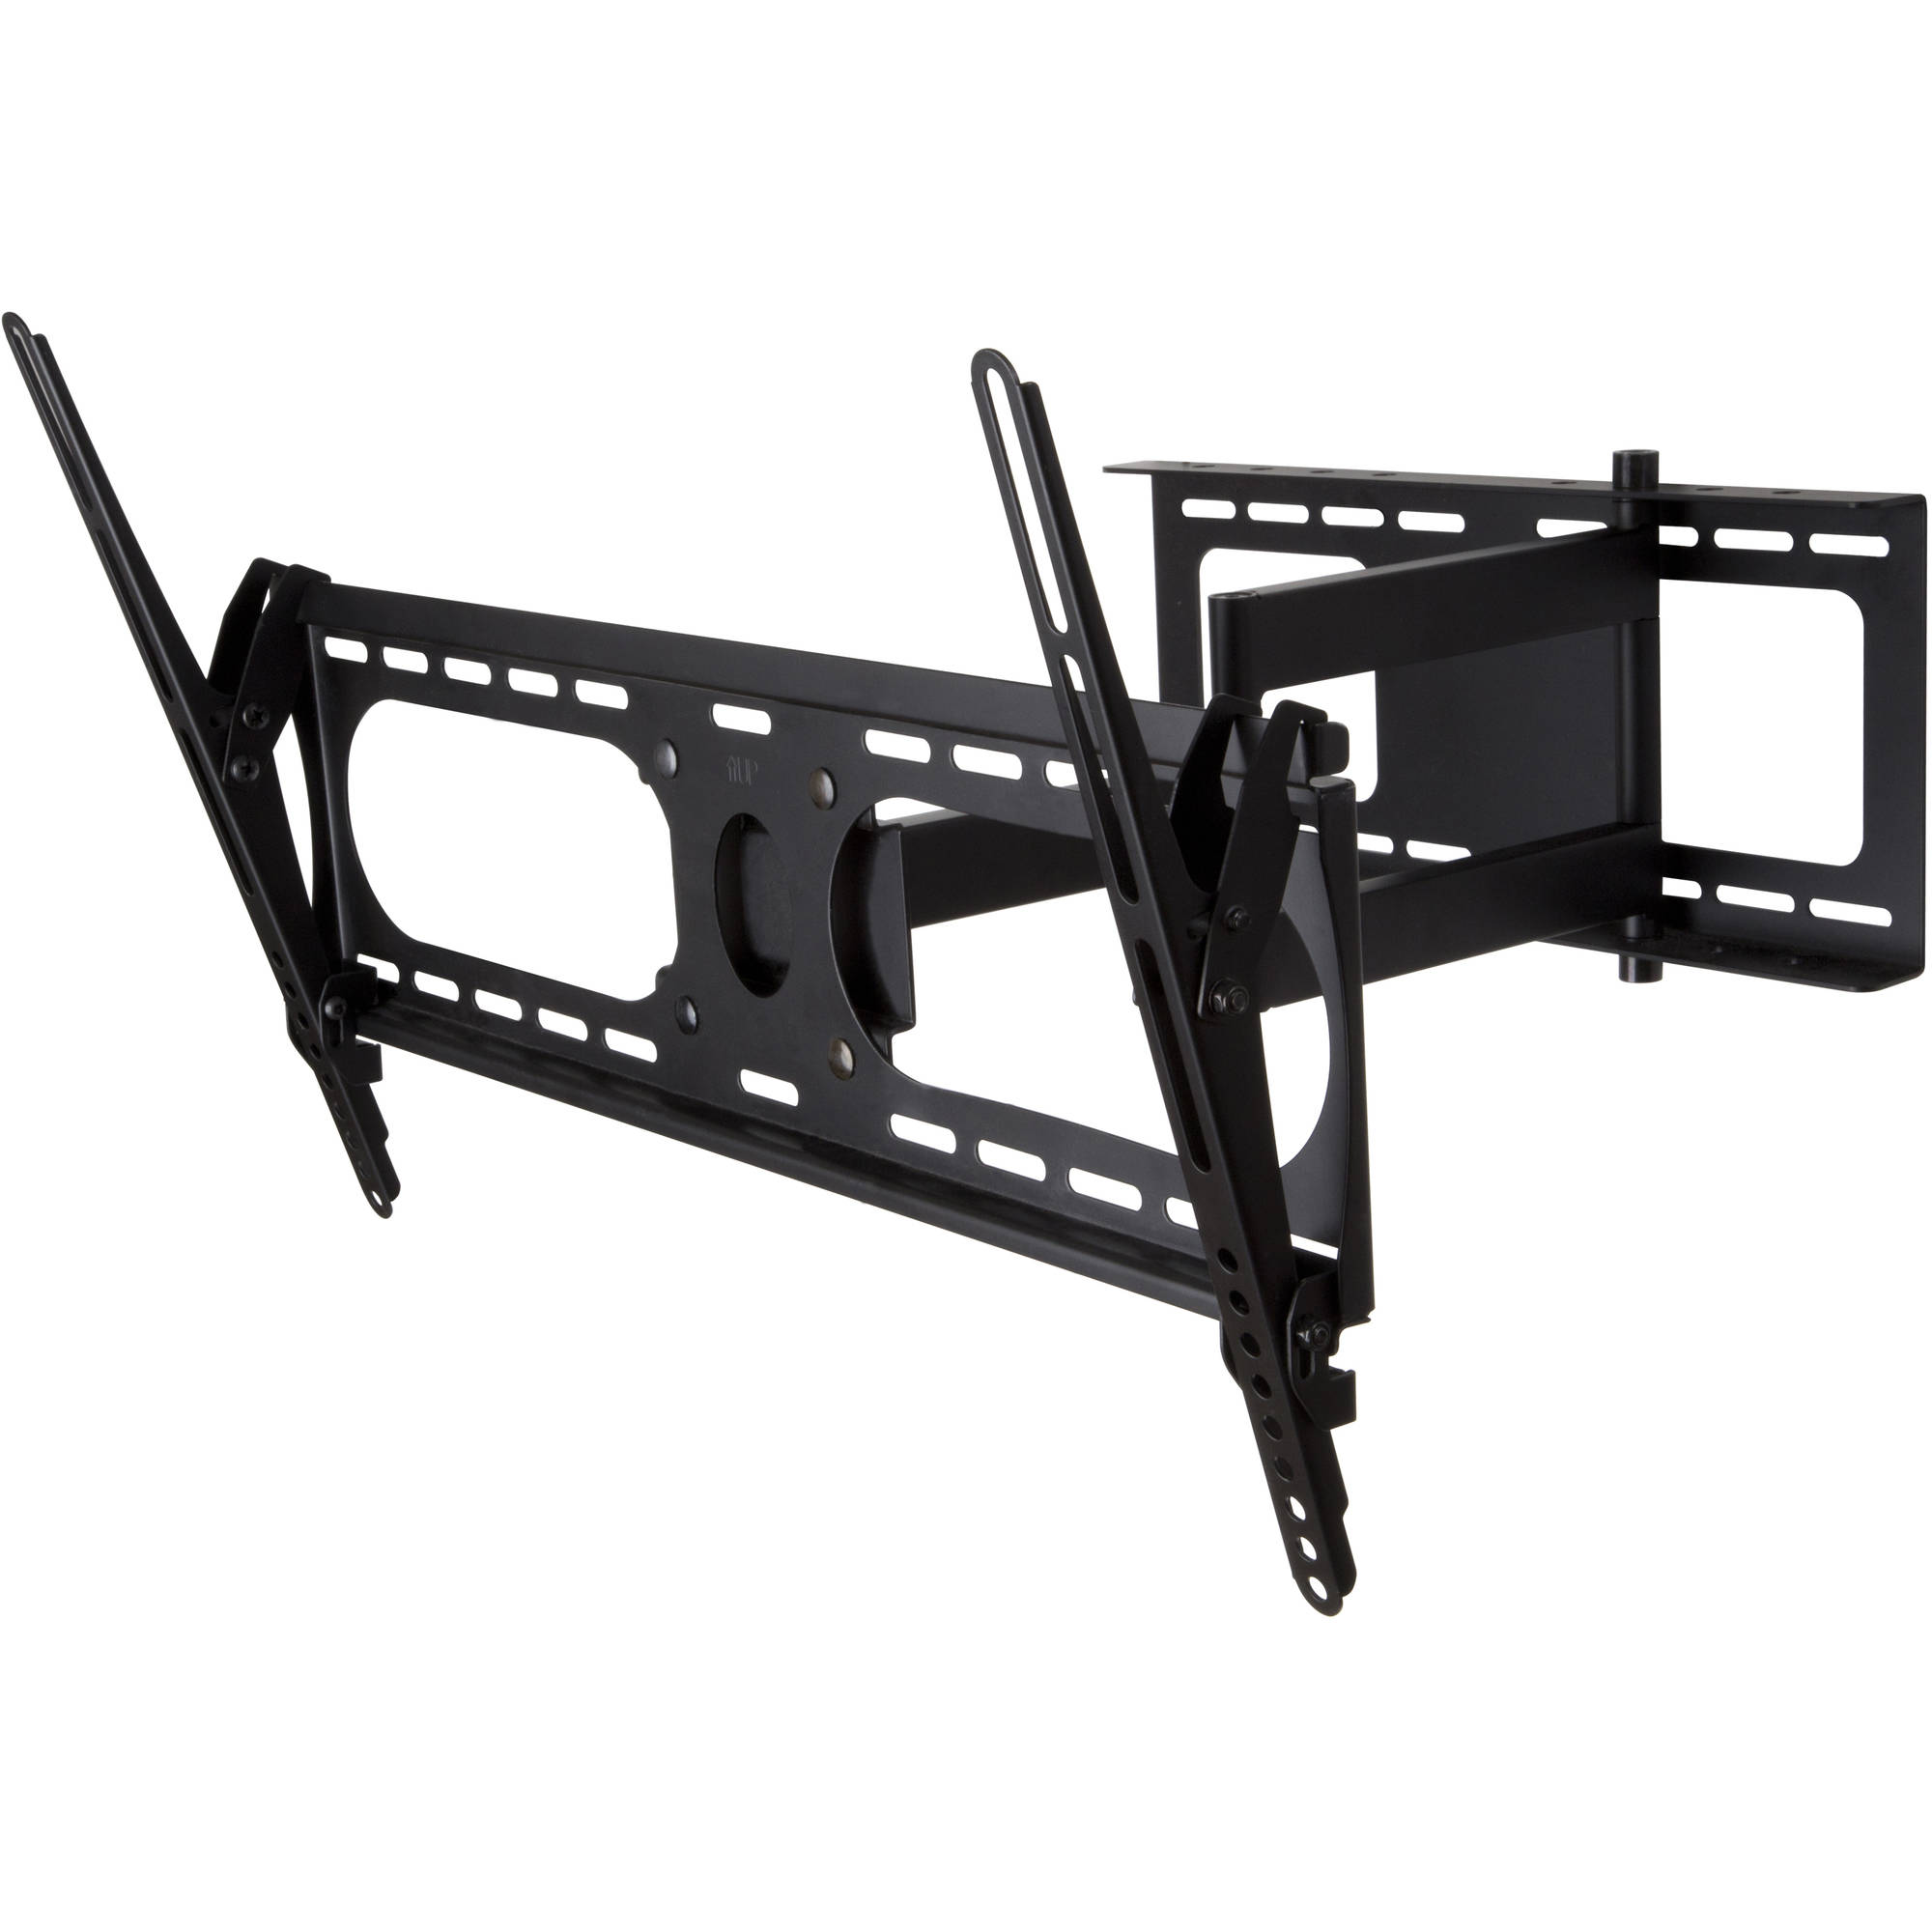 "Swift Mount SWIFT650-AP Full Motion Wall Mount for Flat Panel TV's 37""-65"""